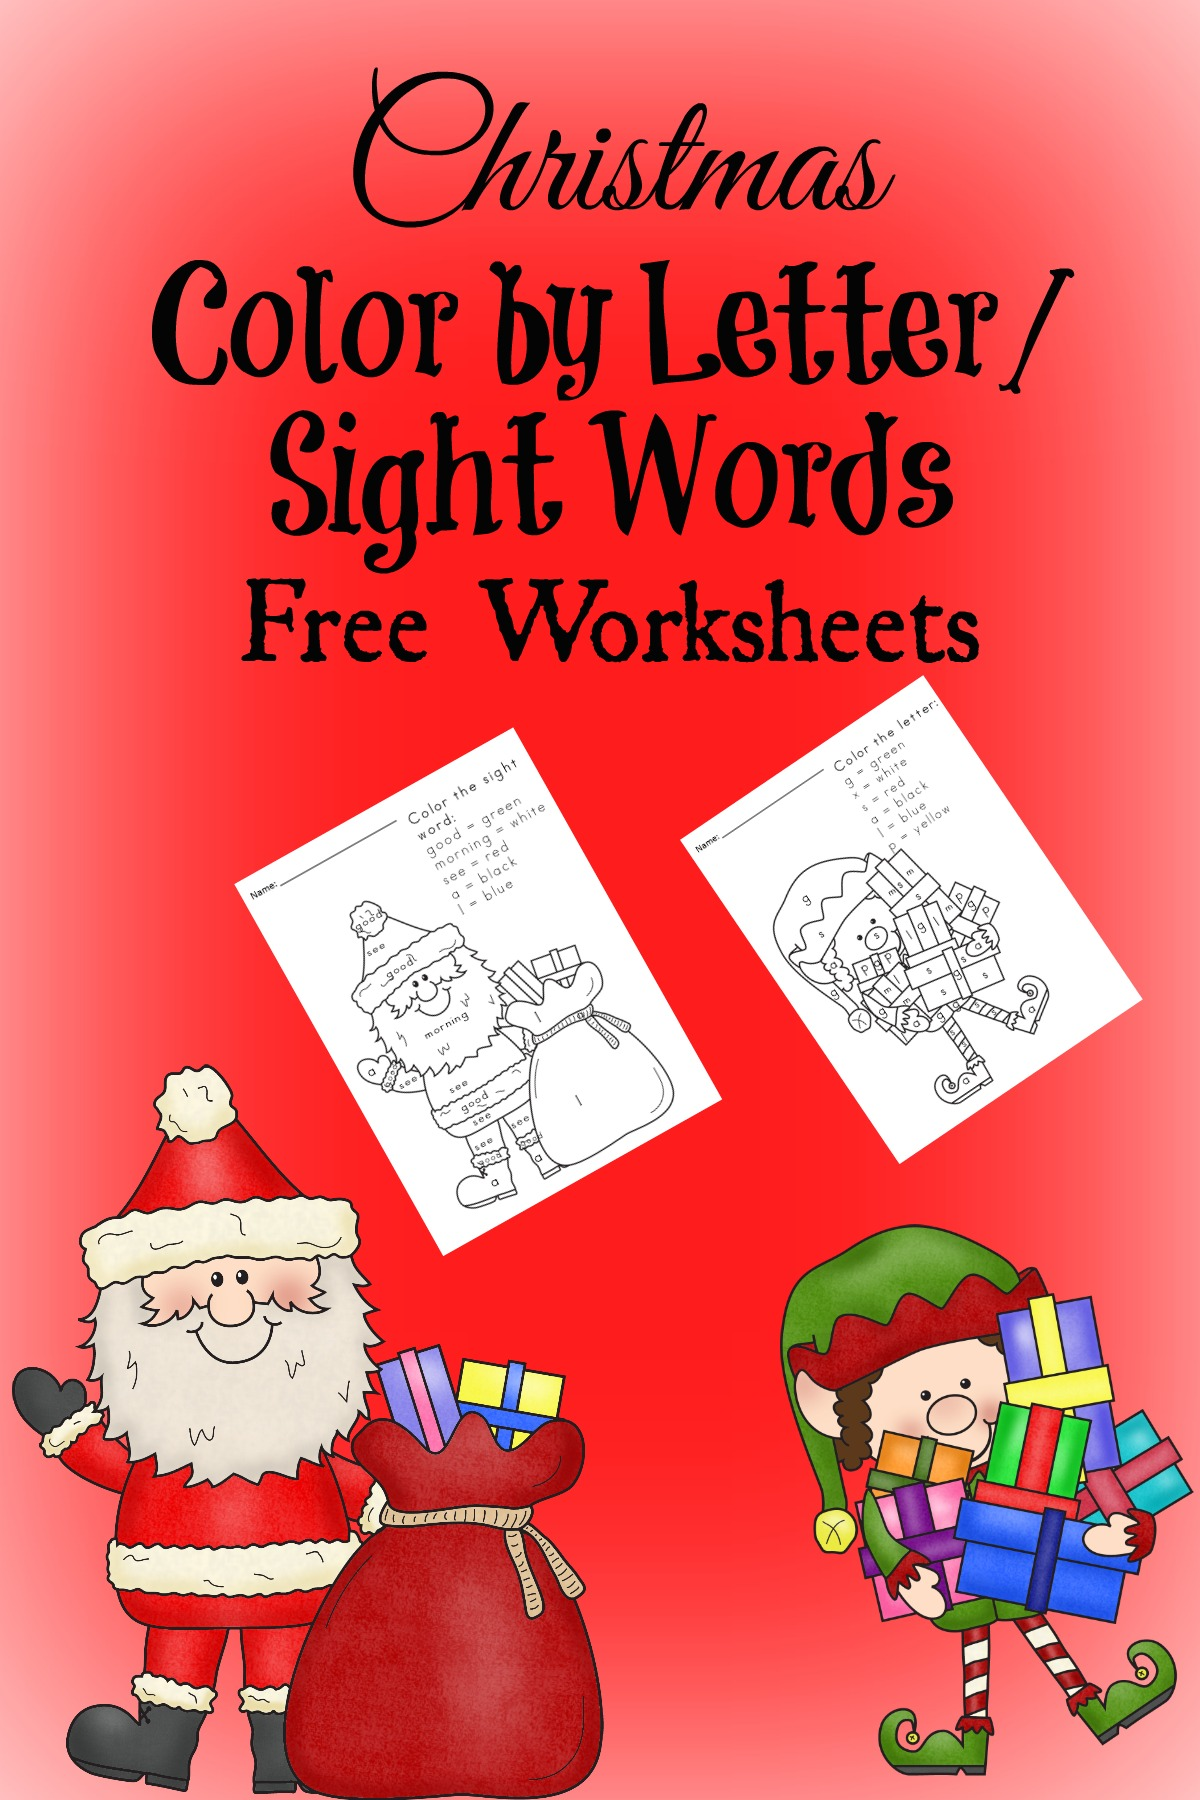 Free Christmas Color by Letter/Sight Word Worksheets for Kindergarten/Preschool. Make Learning FUN!